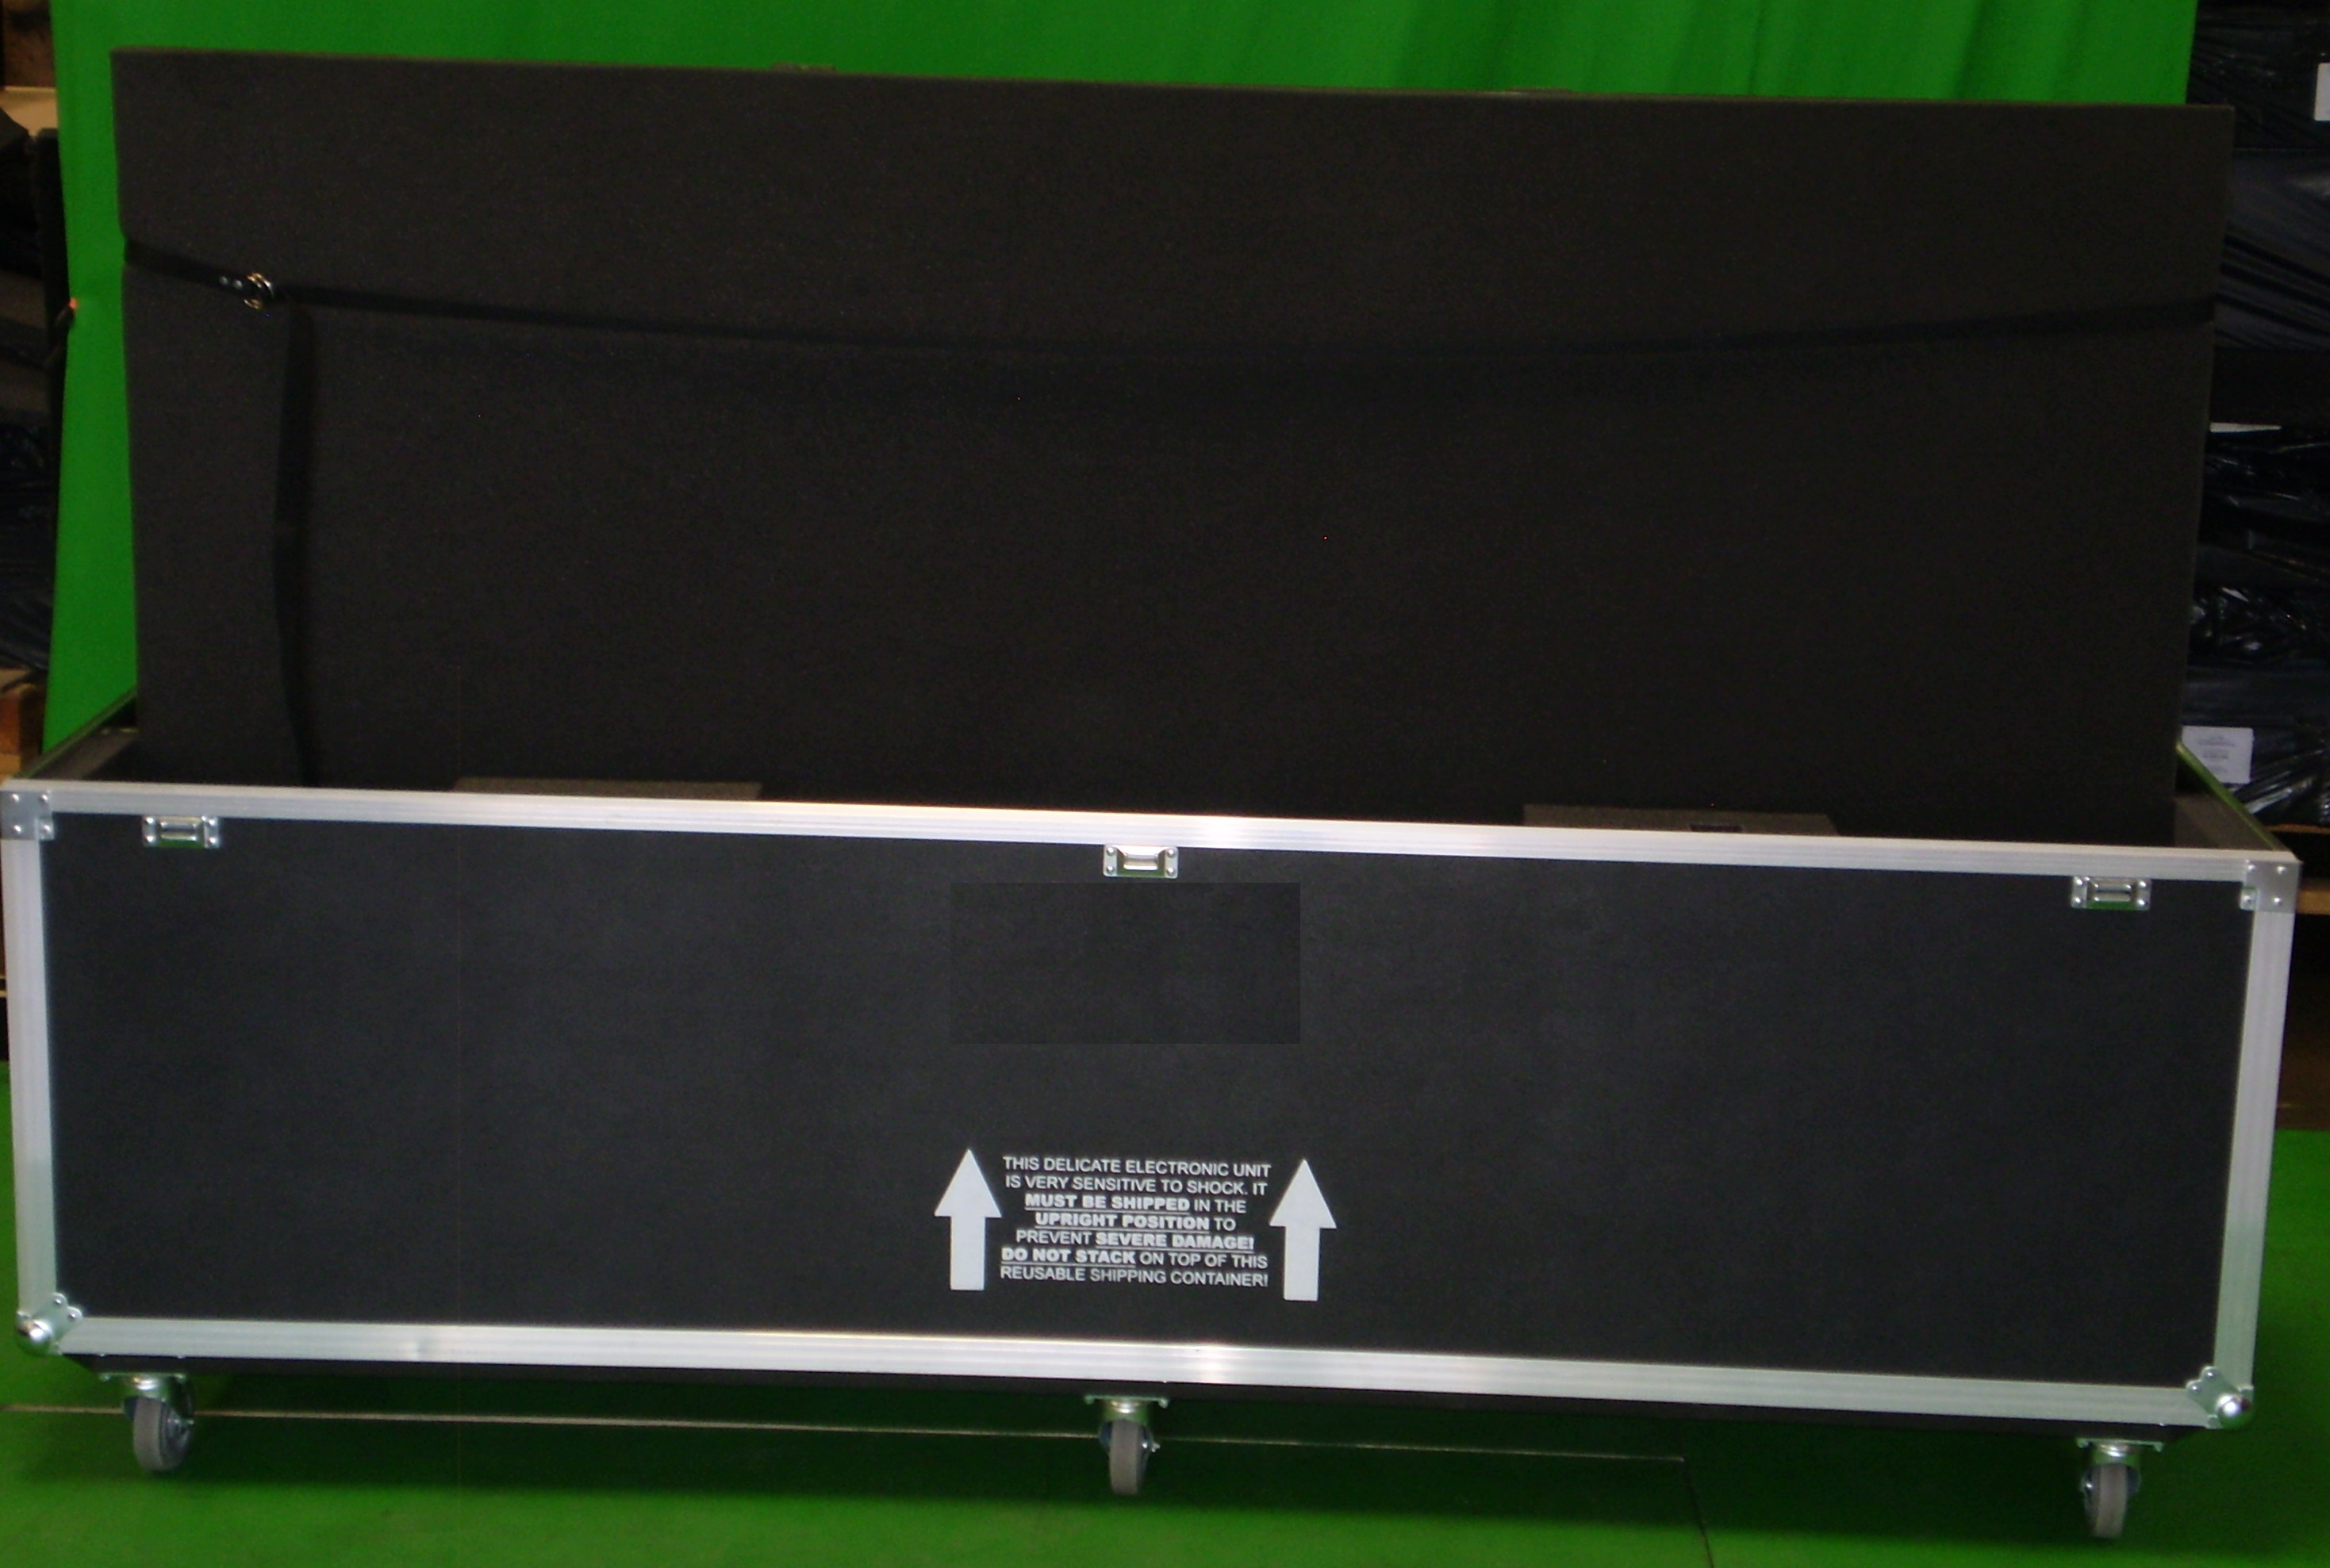 Print # 6178 - Custom Road Case for Sharp PN-R903 LED-backlit LCD Flat Panel Display Monitor By Nelson Case Corp